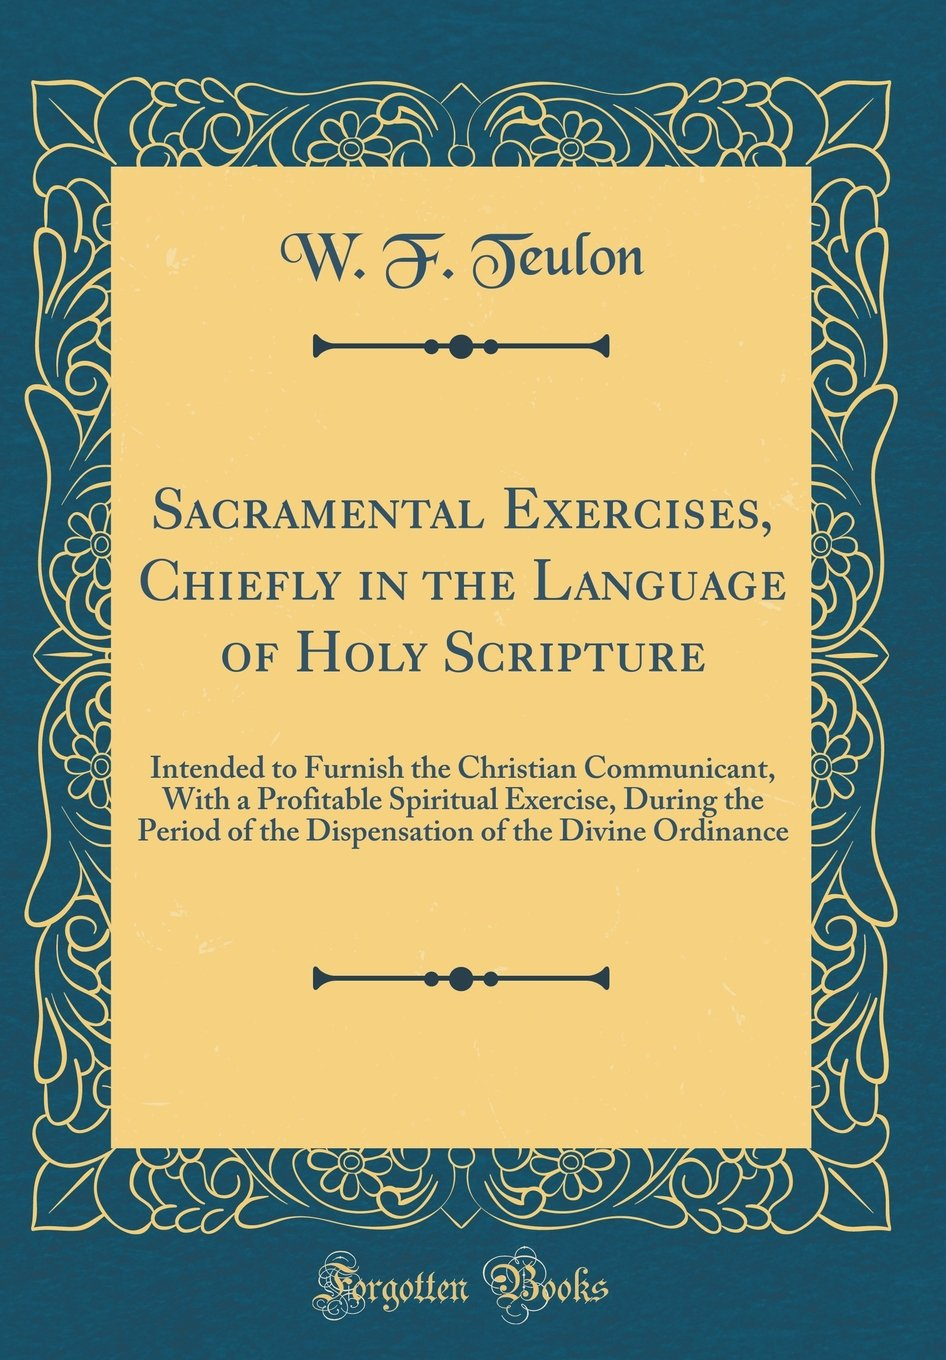 Sacramental Exercises, Chiefly in the Language of Holy Scripture: Intended to Furnish the Christian Communicant, With a Profitable Spiritual Exercise, ... of the Divine Ordinance (Classic Reprint)